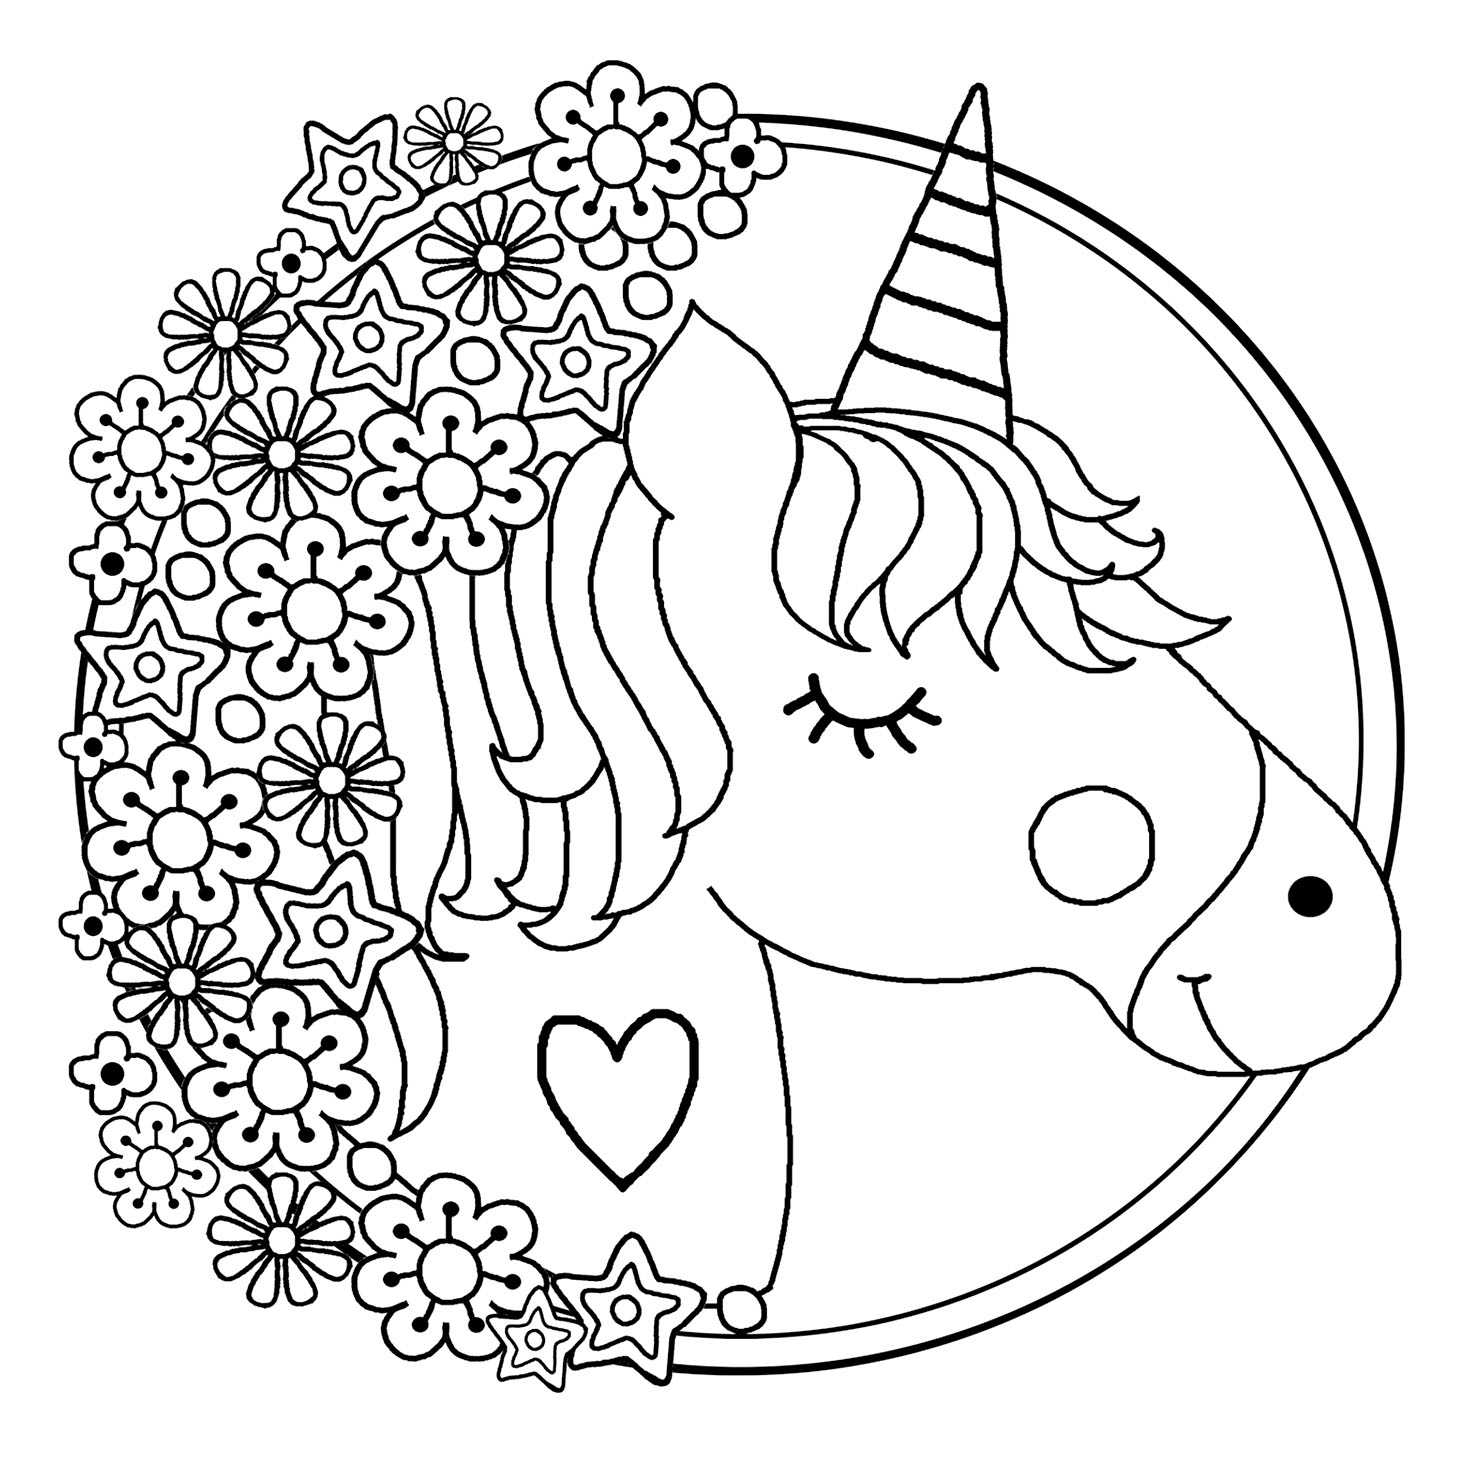 coloring pictures of unicorn unicorns coloring pages minister coloring pictures coloring of unicorn